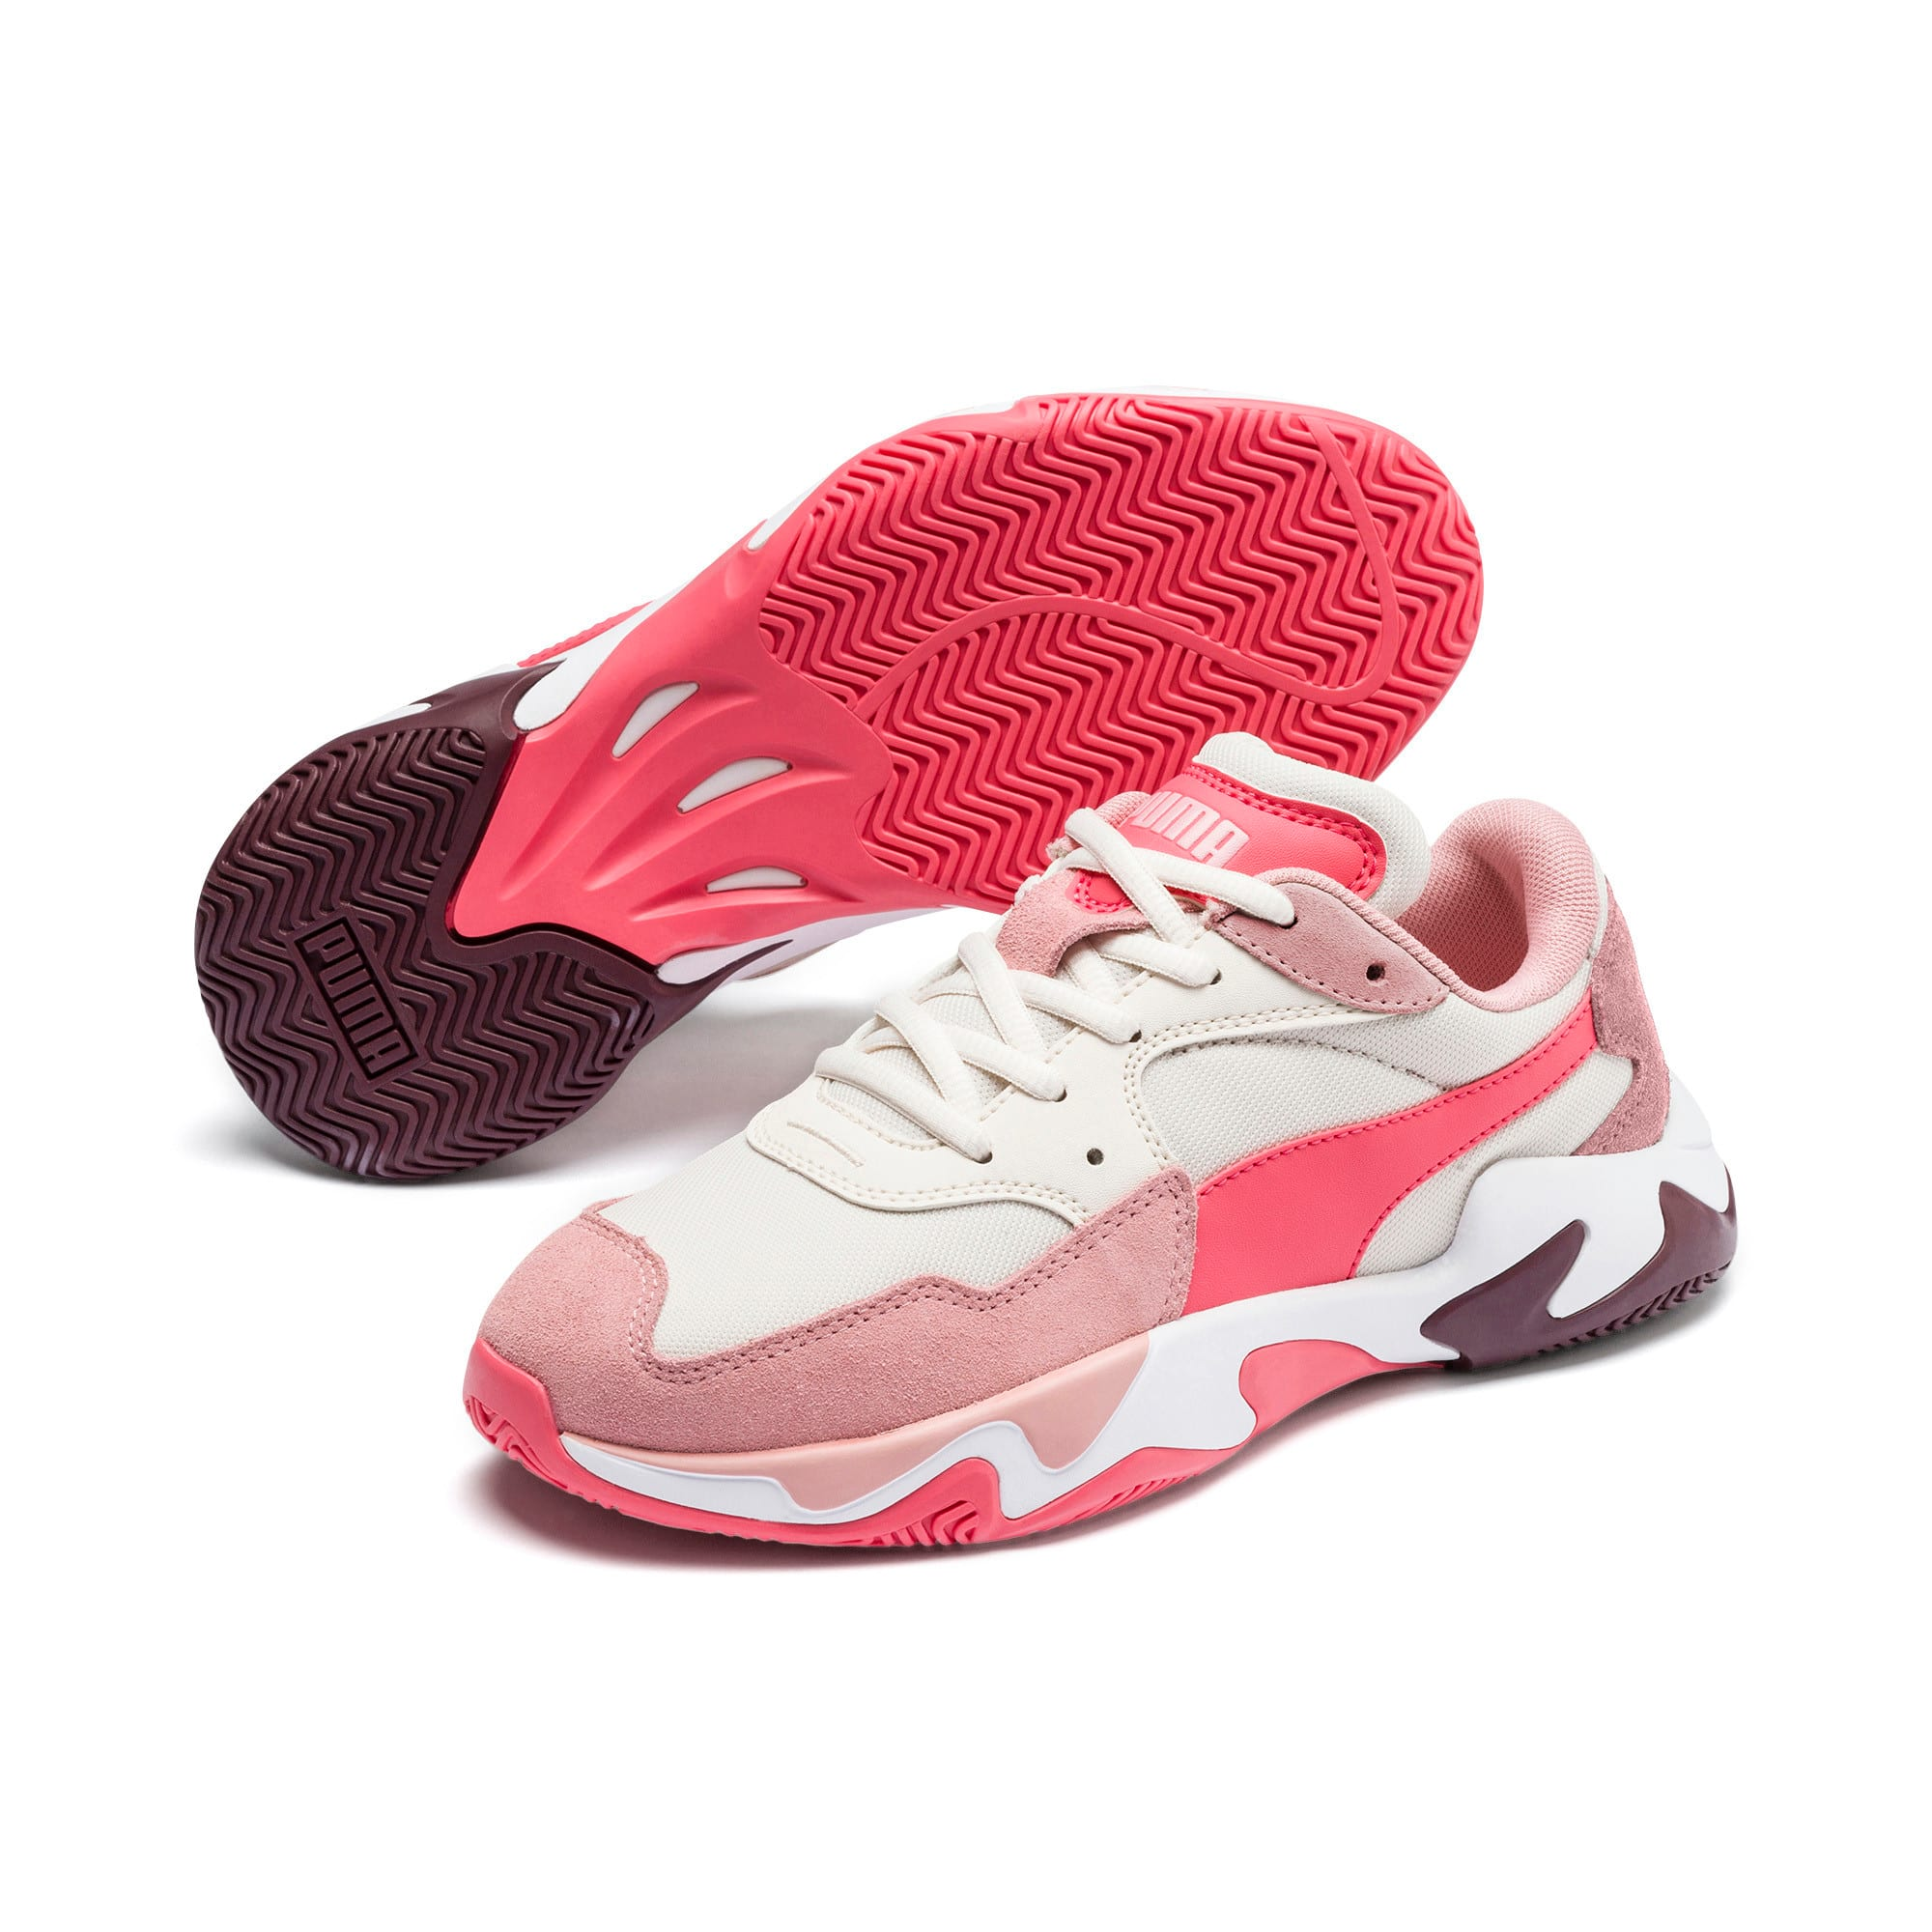 Anteprima 2 di Storm Ray Youth Trainers, Bridal Rose-Pastel Parchment, medio